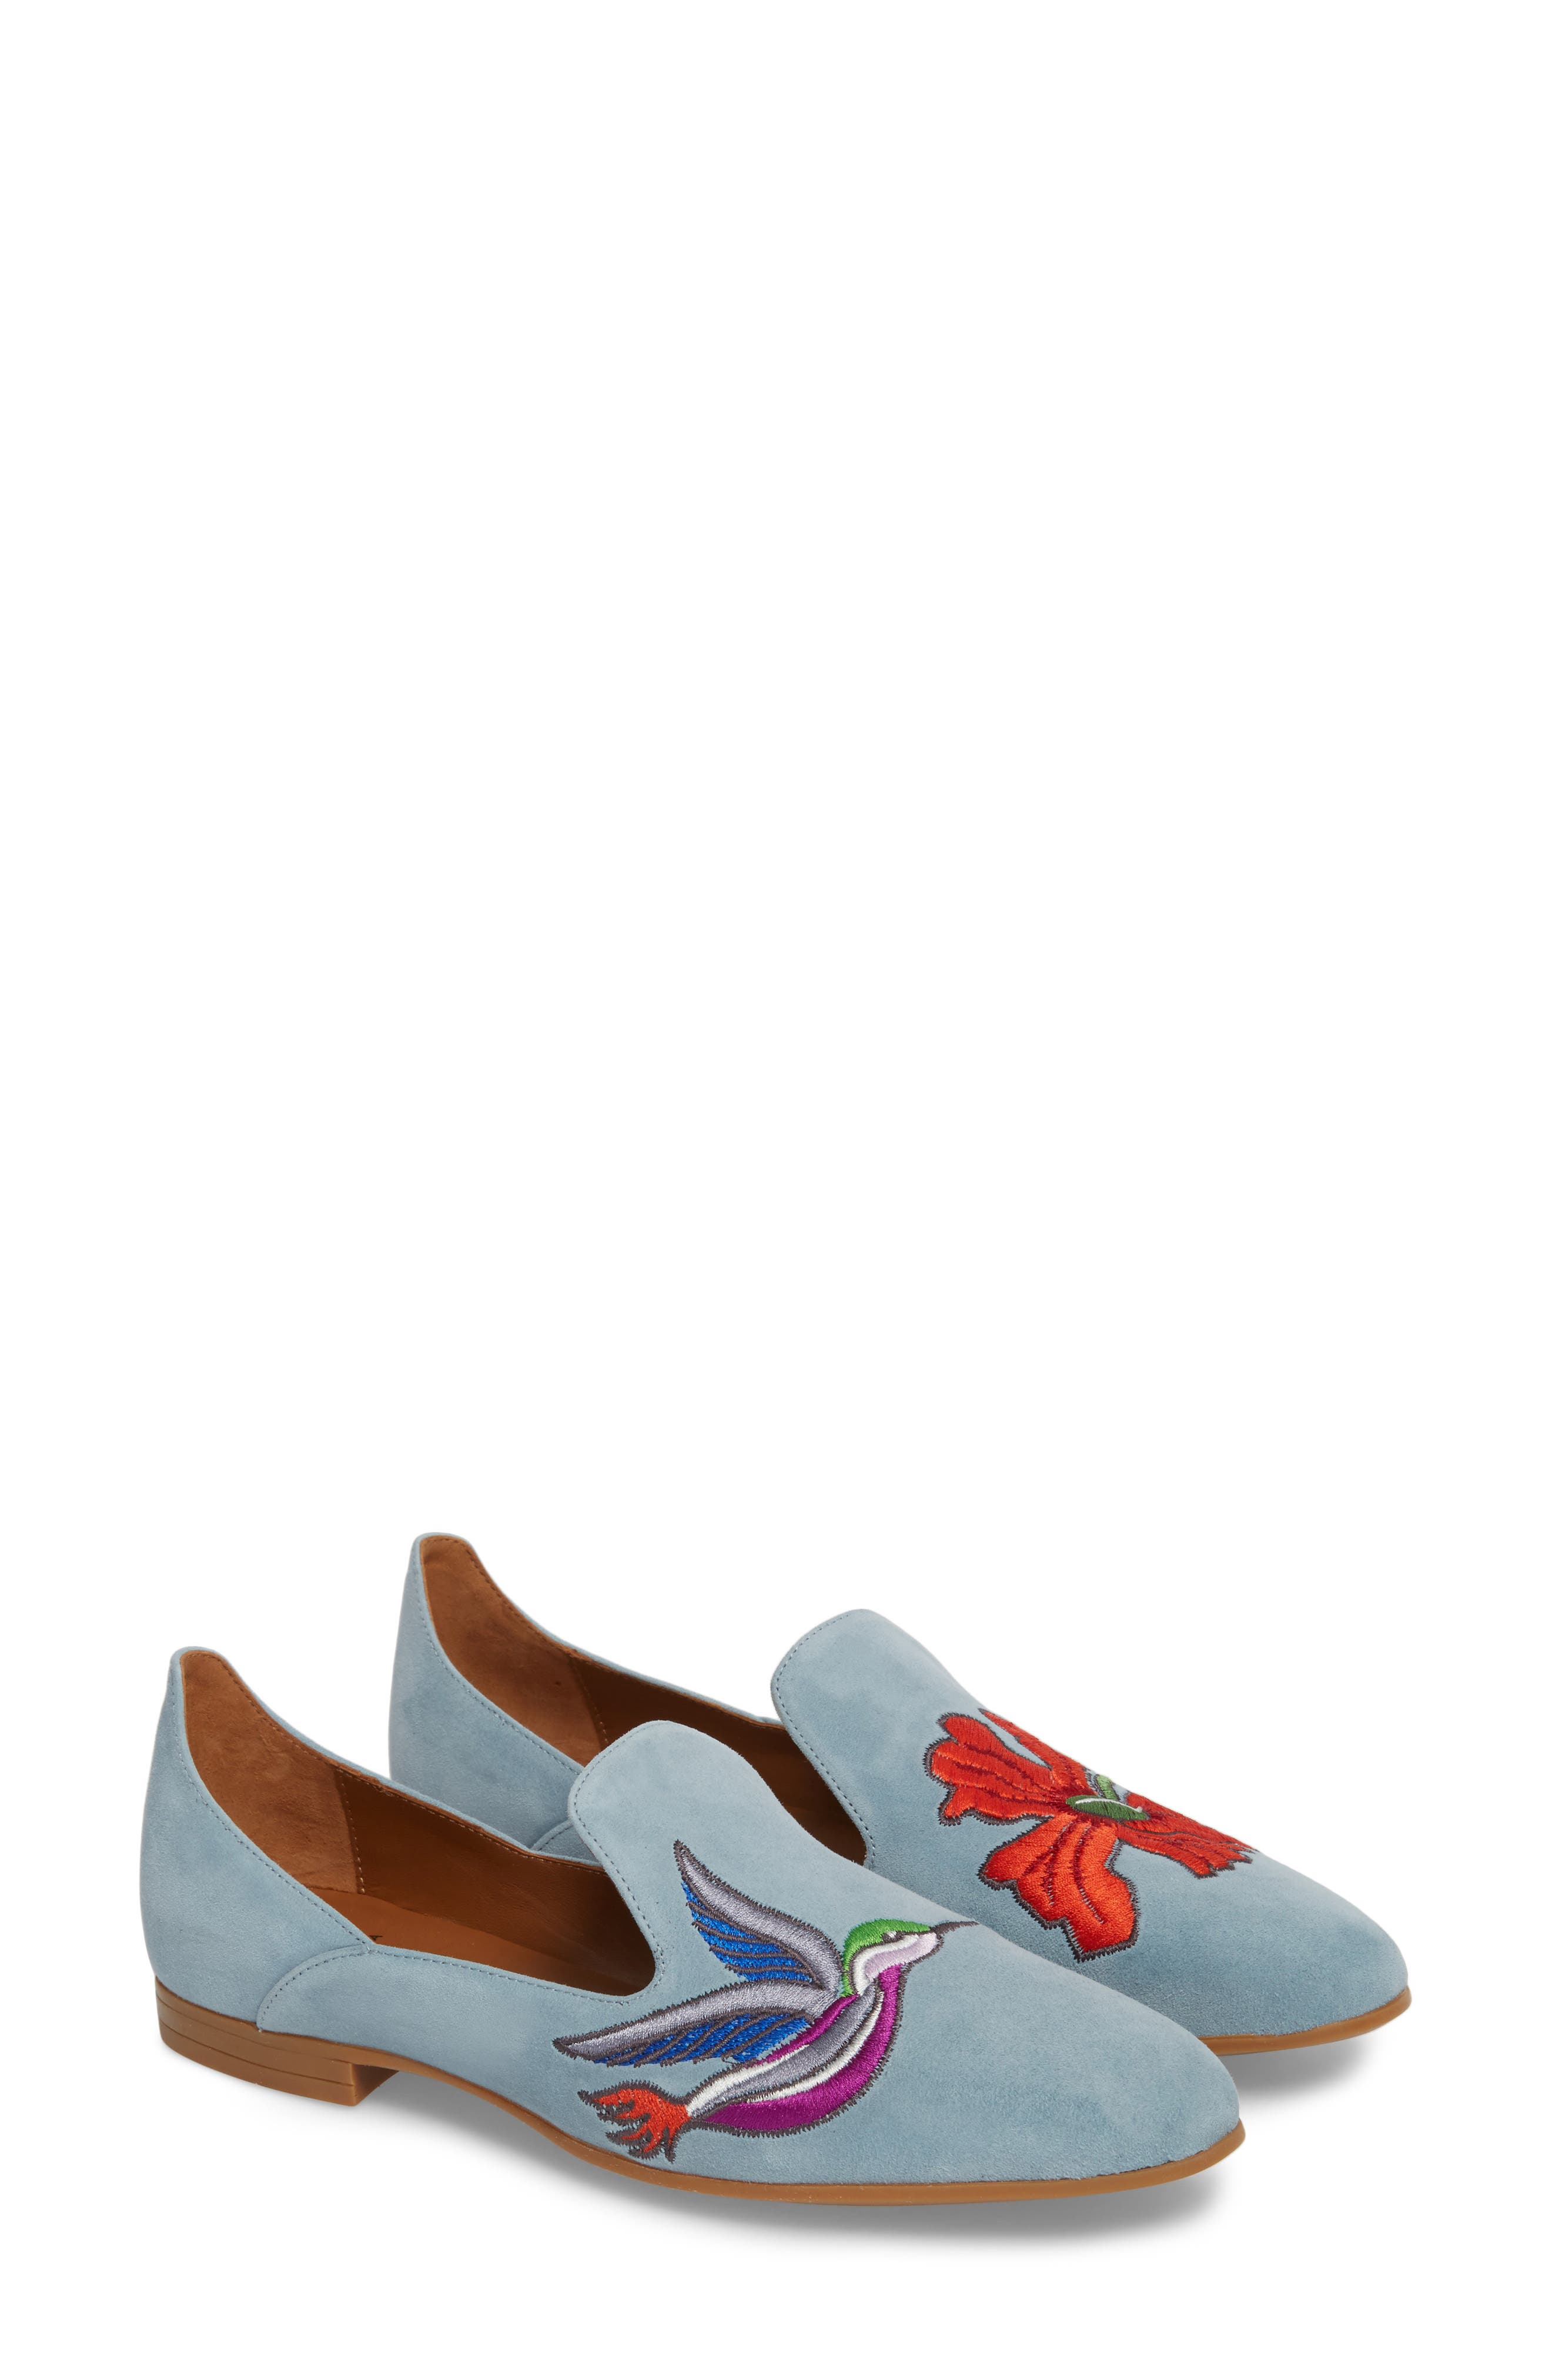 Emmaline Embroidered Loafer,                             Alternate thumbnail 2, color,                             Chambray